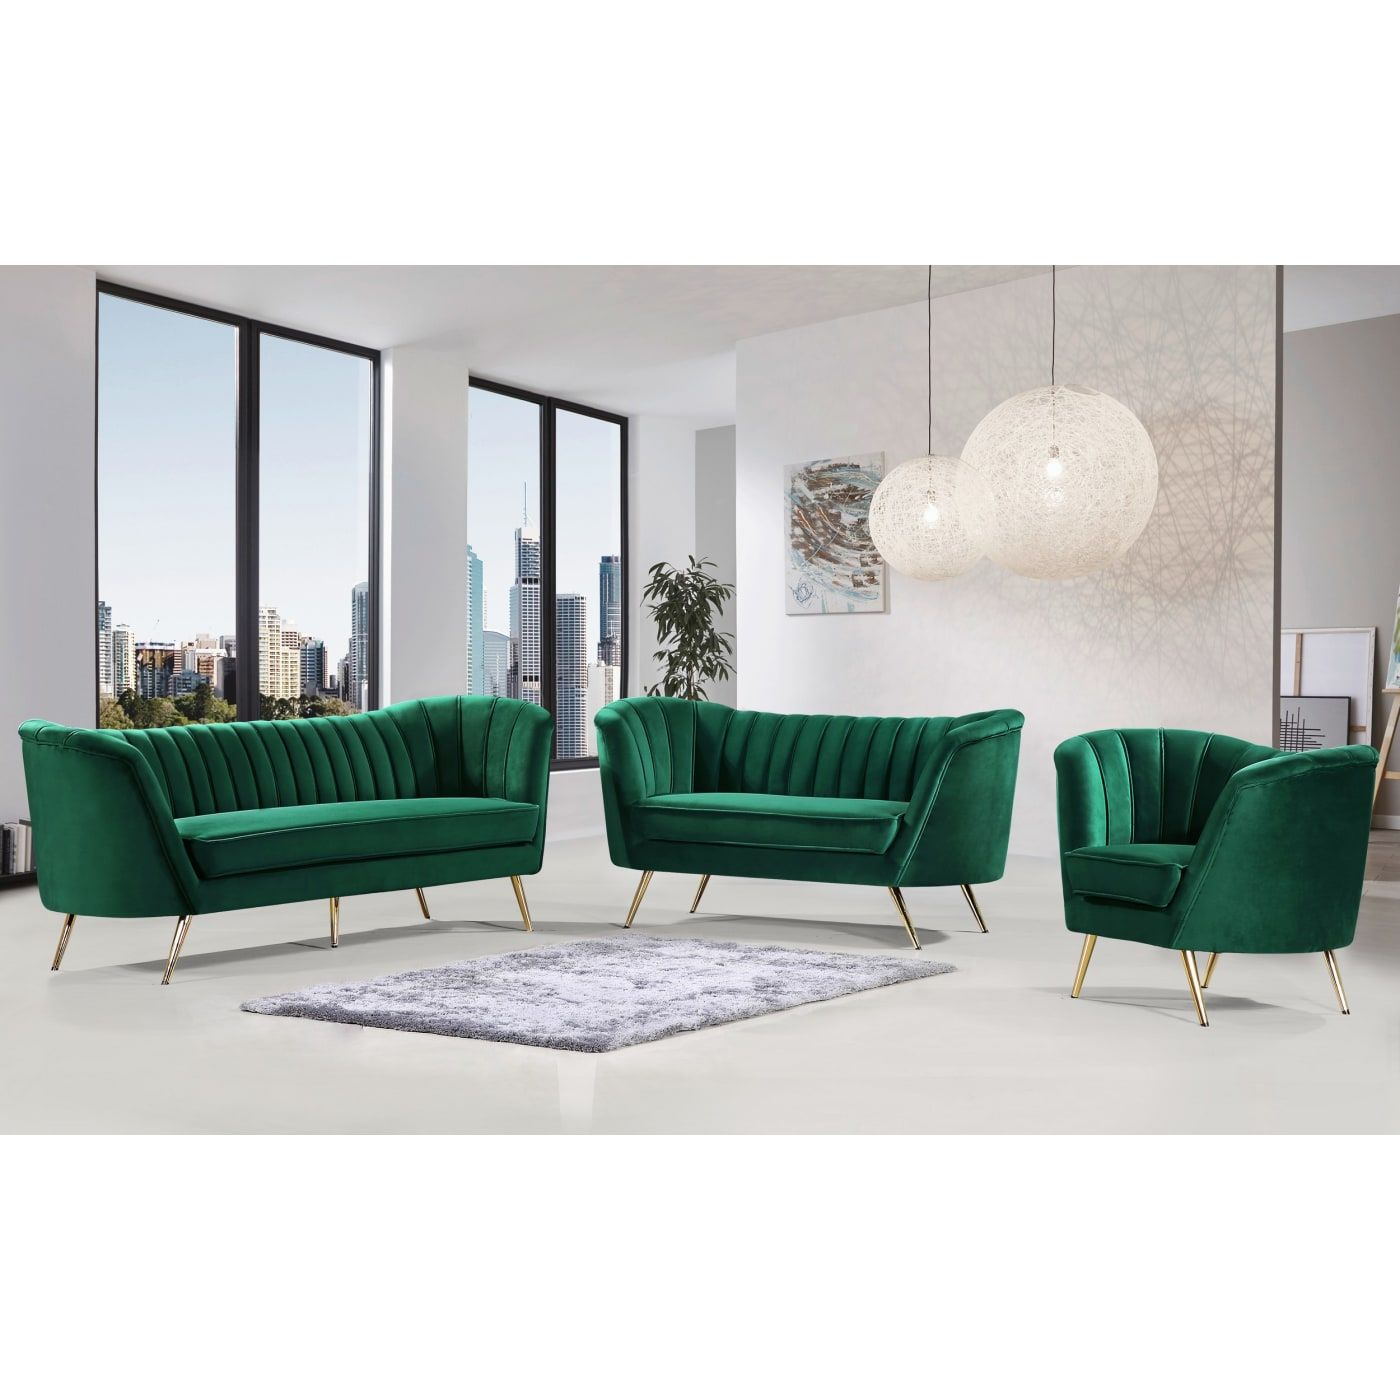 The Curvy Sofa Trend fell in love with The Velvet Sofa Trend and